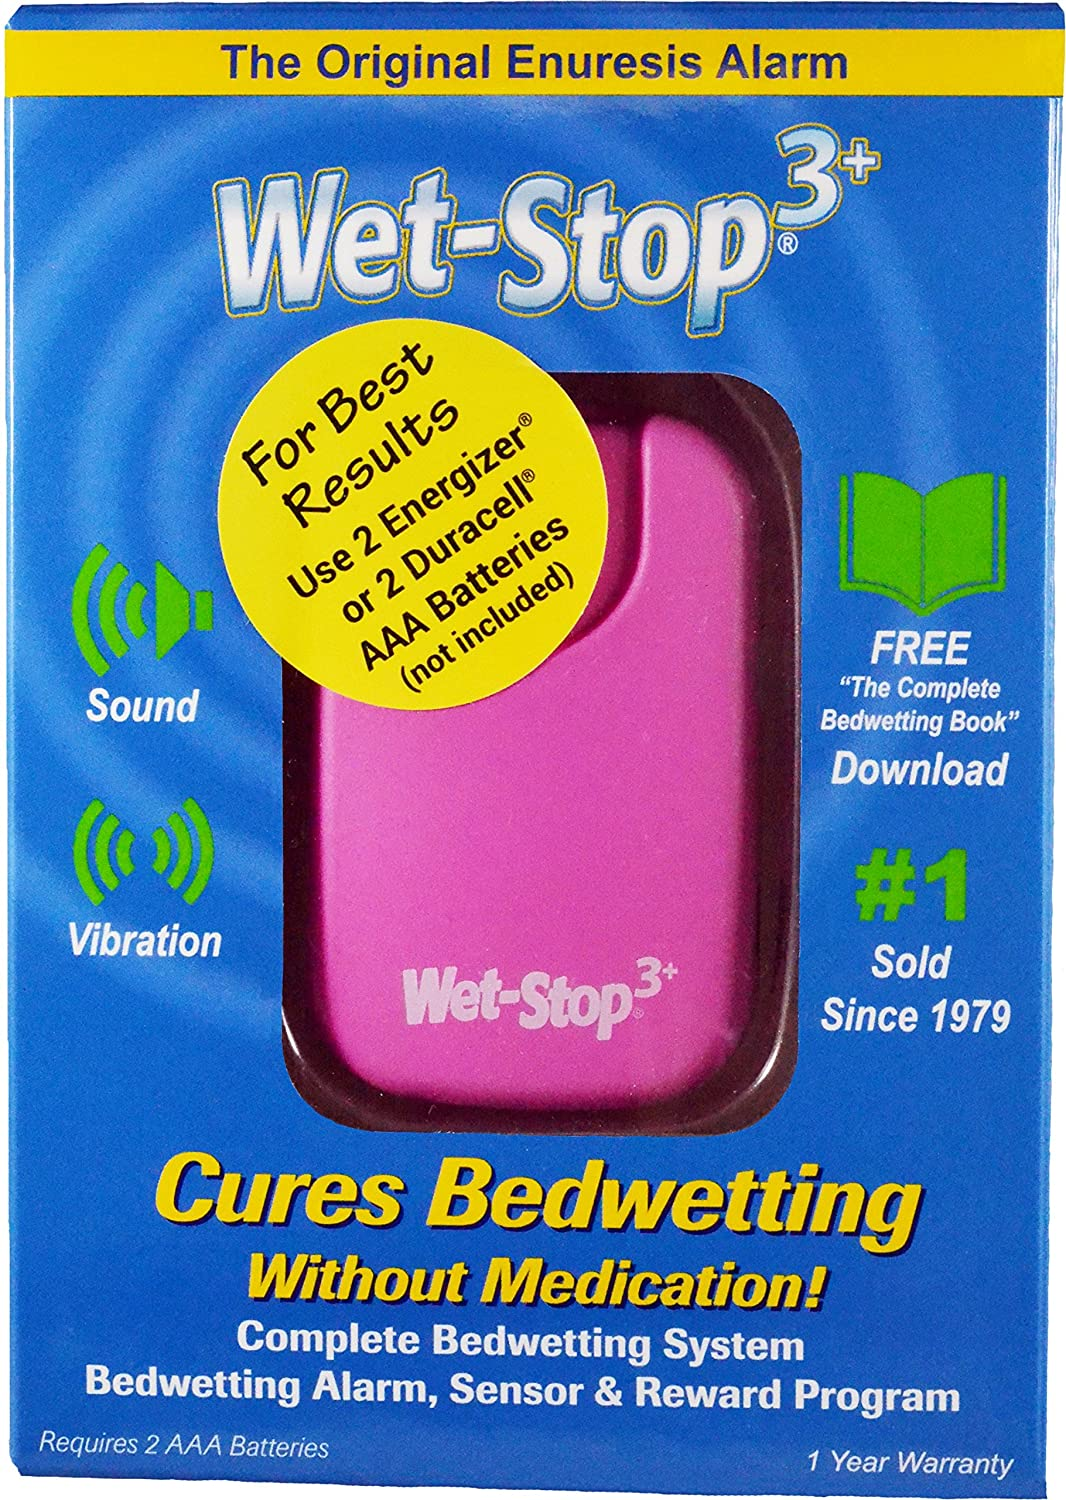 Wet Stop 3 Bedwetting Alarm (Pink) 6 Alarms & Vibration, Enuresis Alarm, Incontinence, Potty Training,